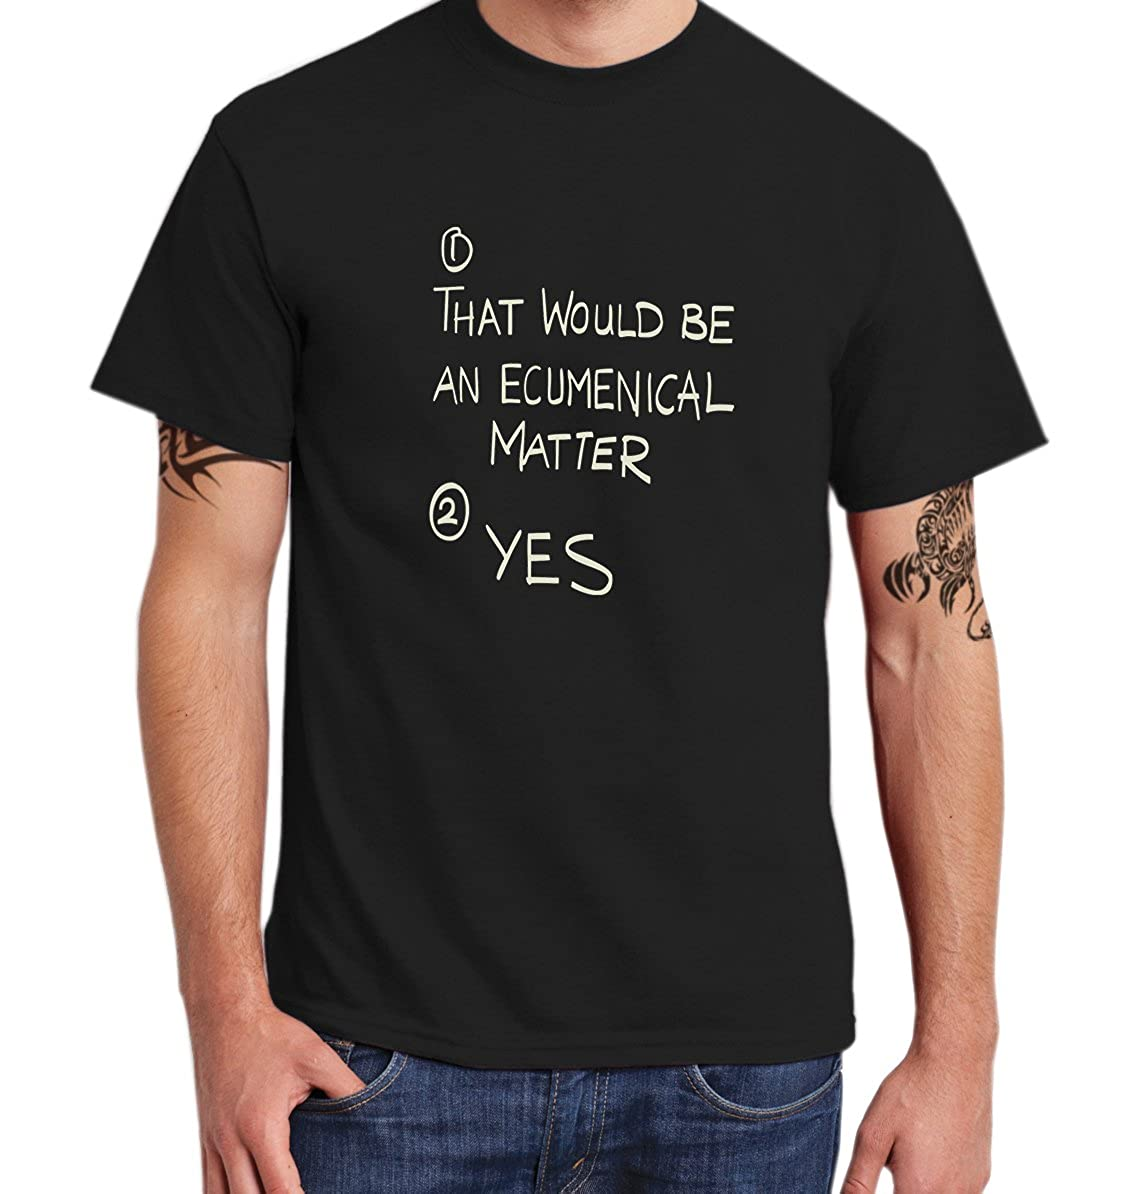 - That would be an ecumenical matter - YES!! FATHER TED - Men's Licensed Retro Black T-Shirt - 100% Cotton - Ideal casual wear or gift for anniversary/Fathers day/Christmas/Summer/Birthday (2XL)